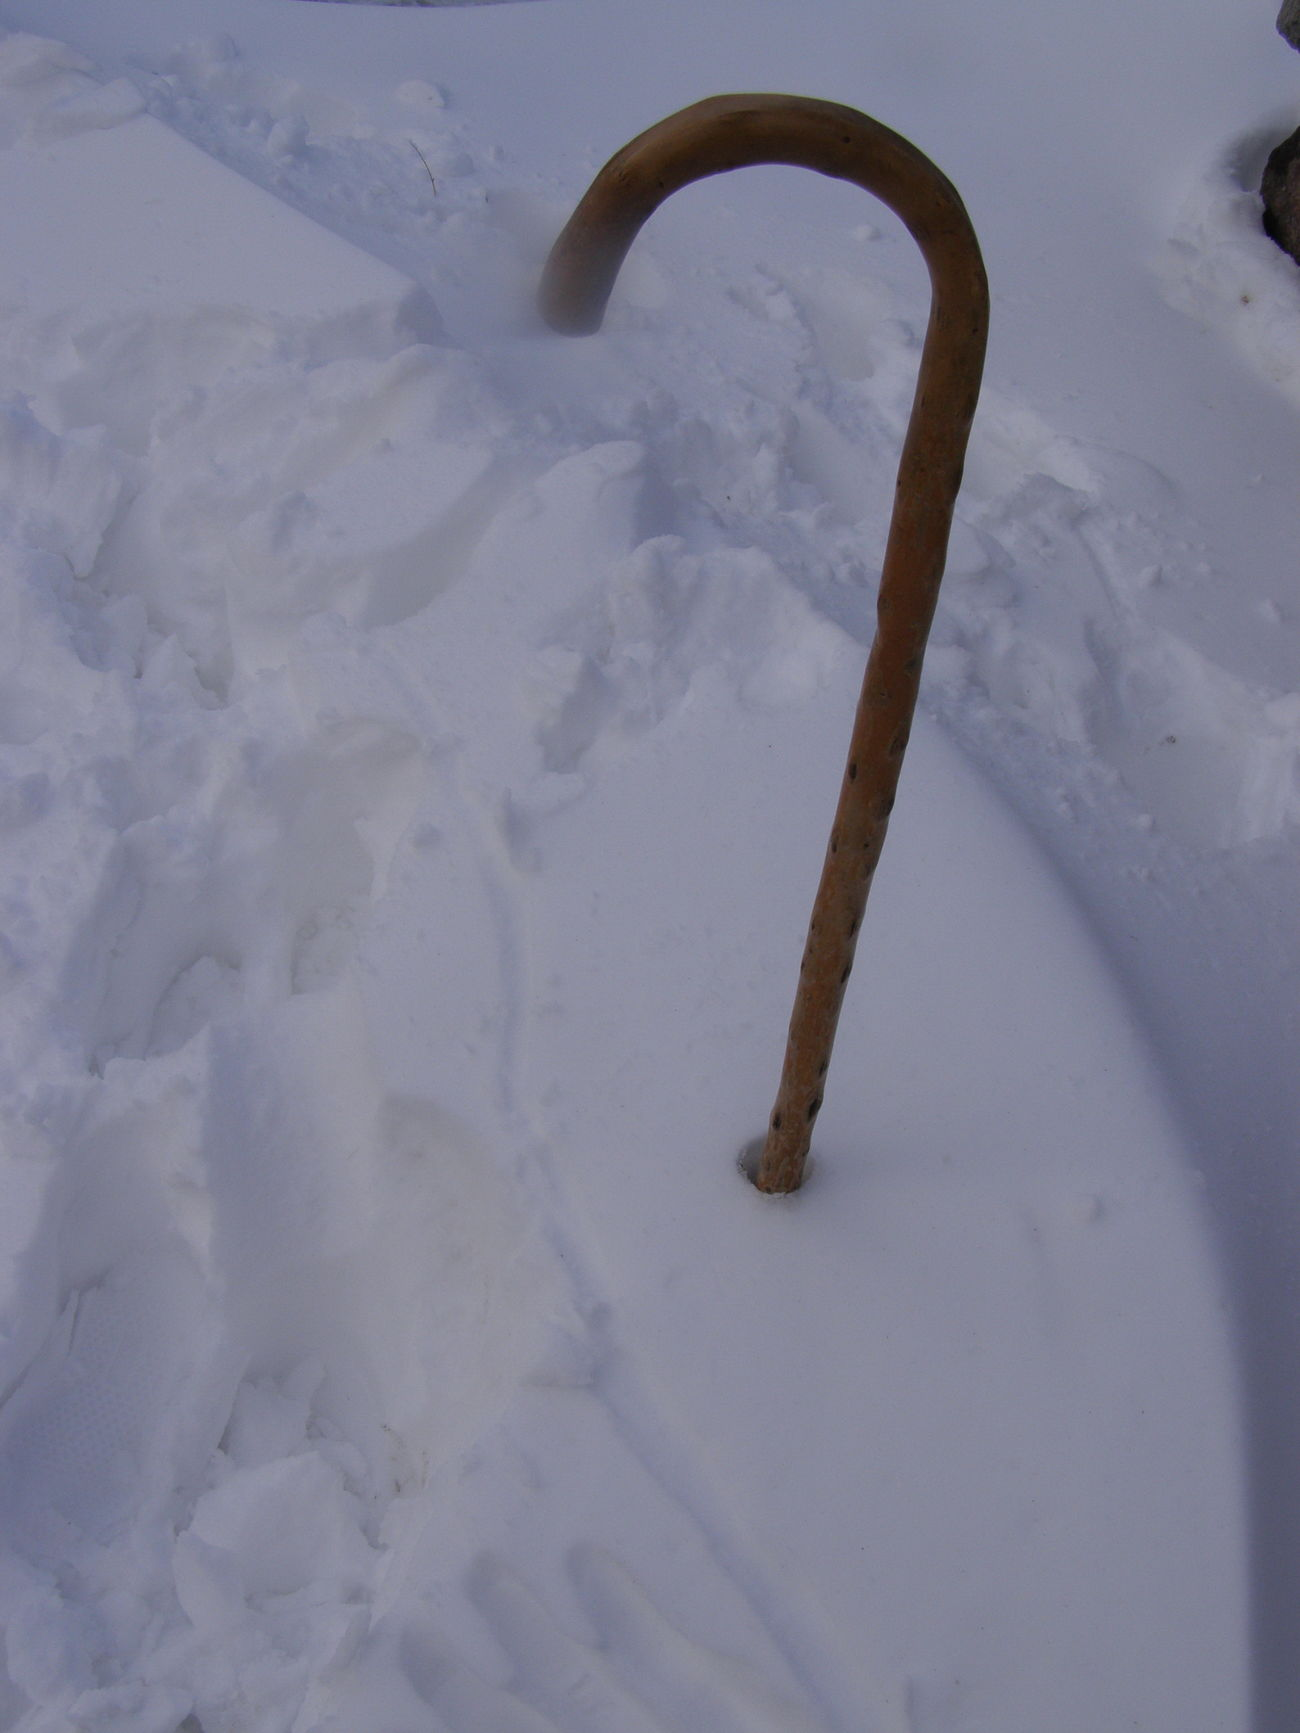 Close-up Cold Temperature Lonely No People Old Age Snow Walking Stick Winter